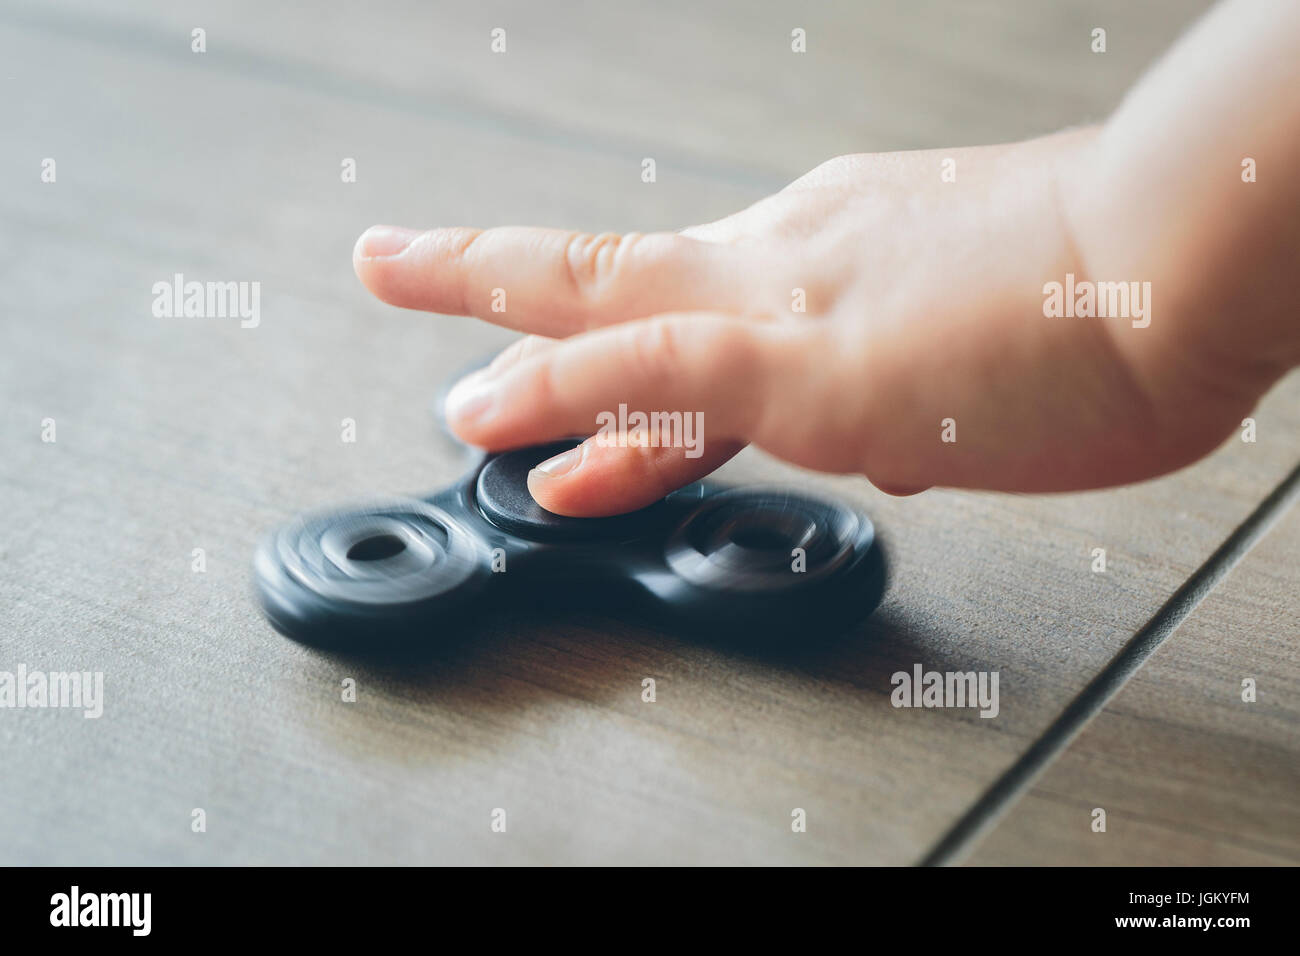 Closeup of a child's hand playing with a fidget spinner - Stock Image